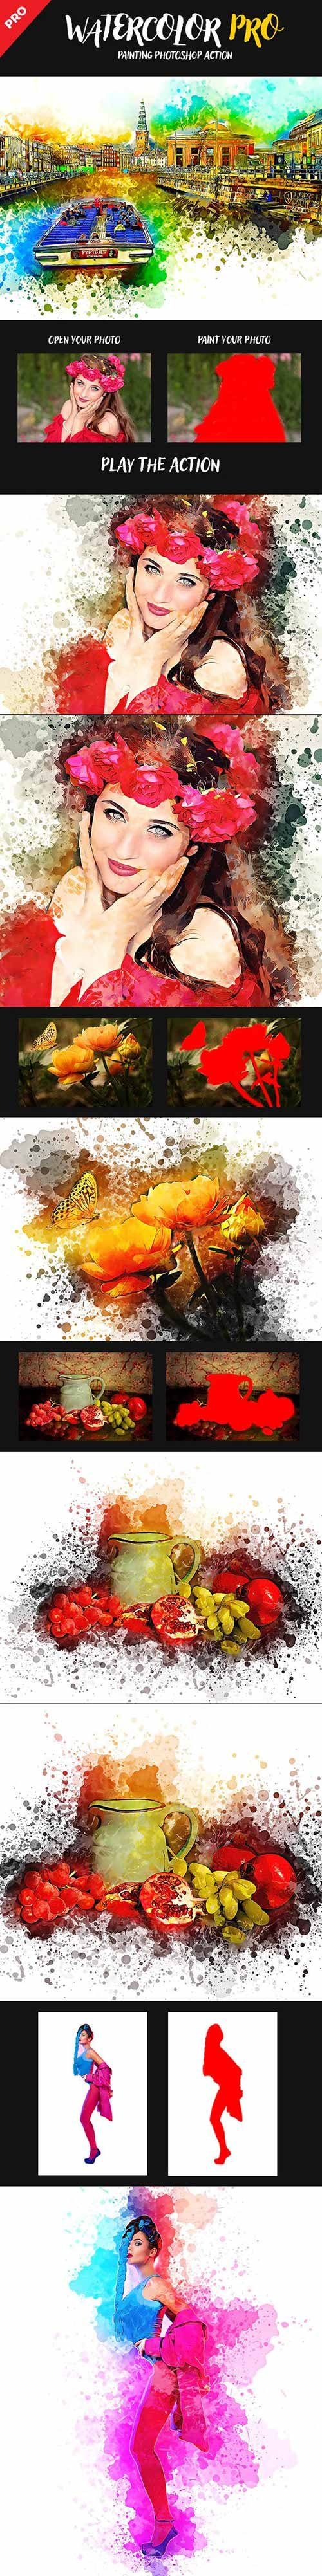 GraphicRiver - Watercolor Pro Painting Photoshop Action 22840711